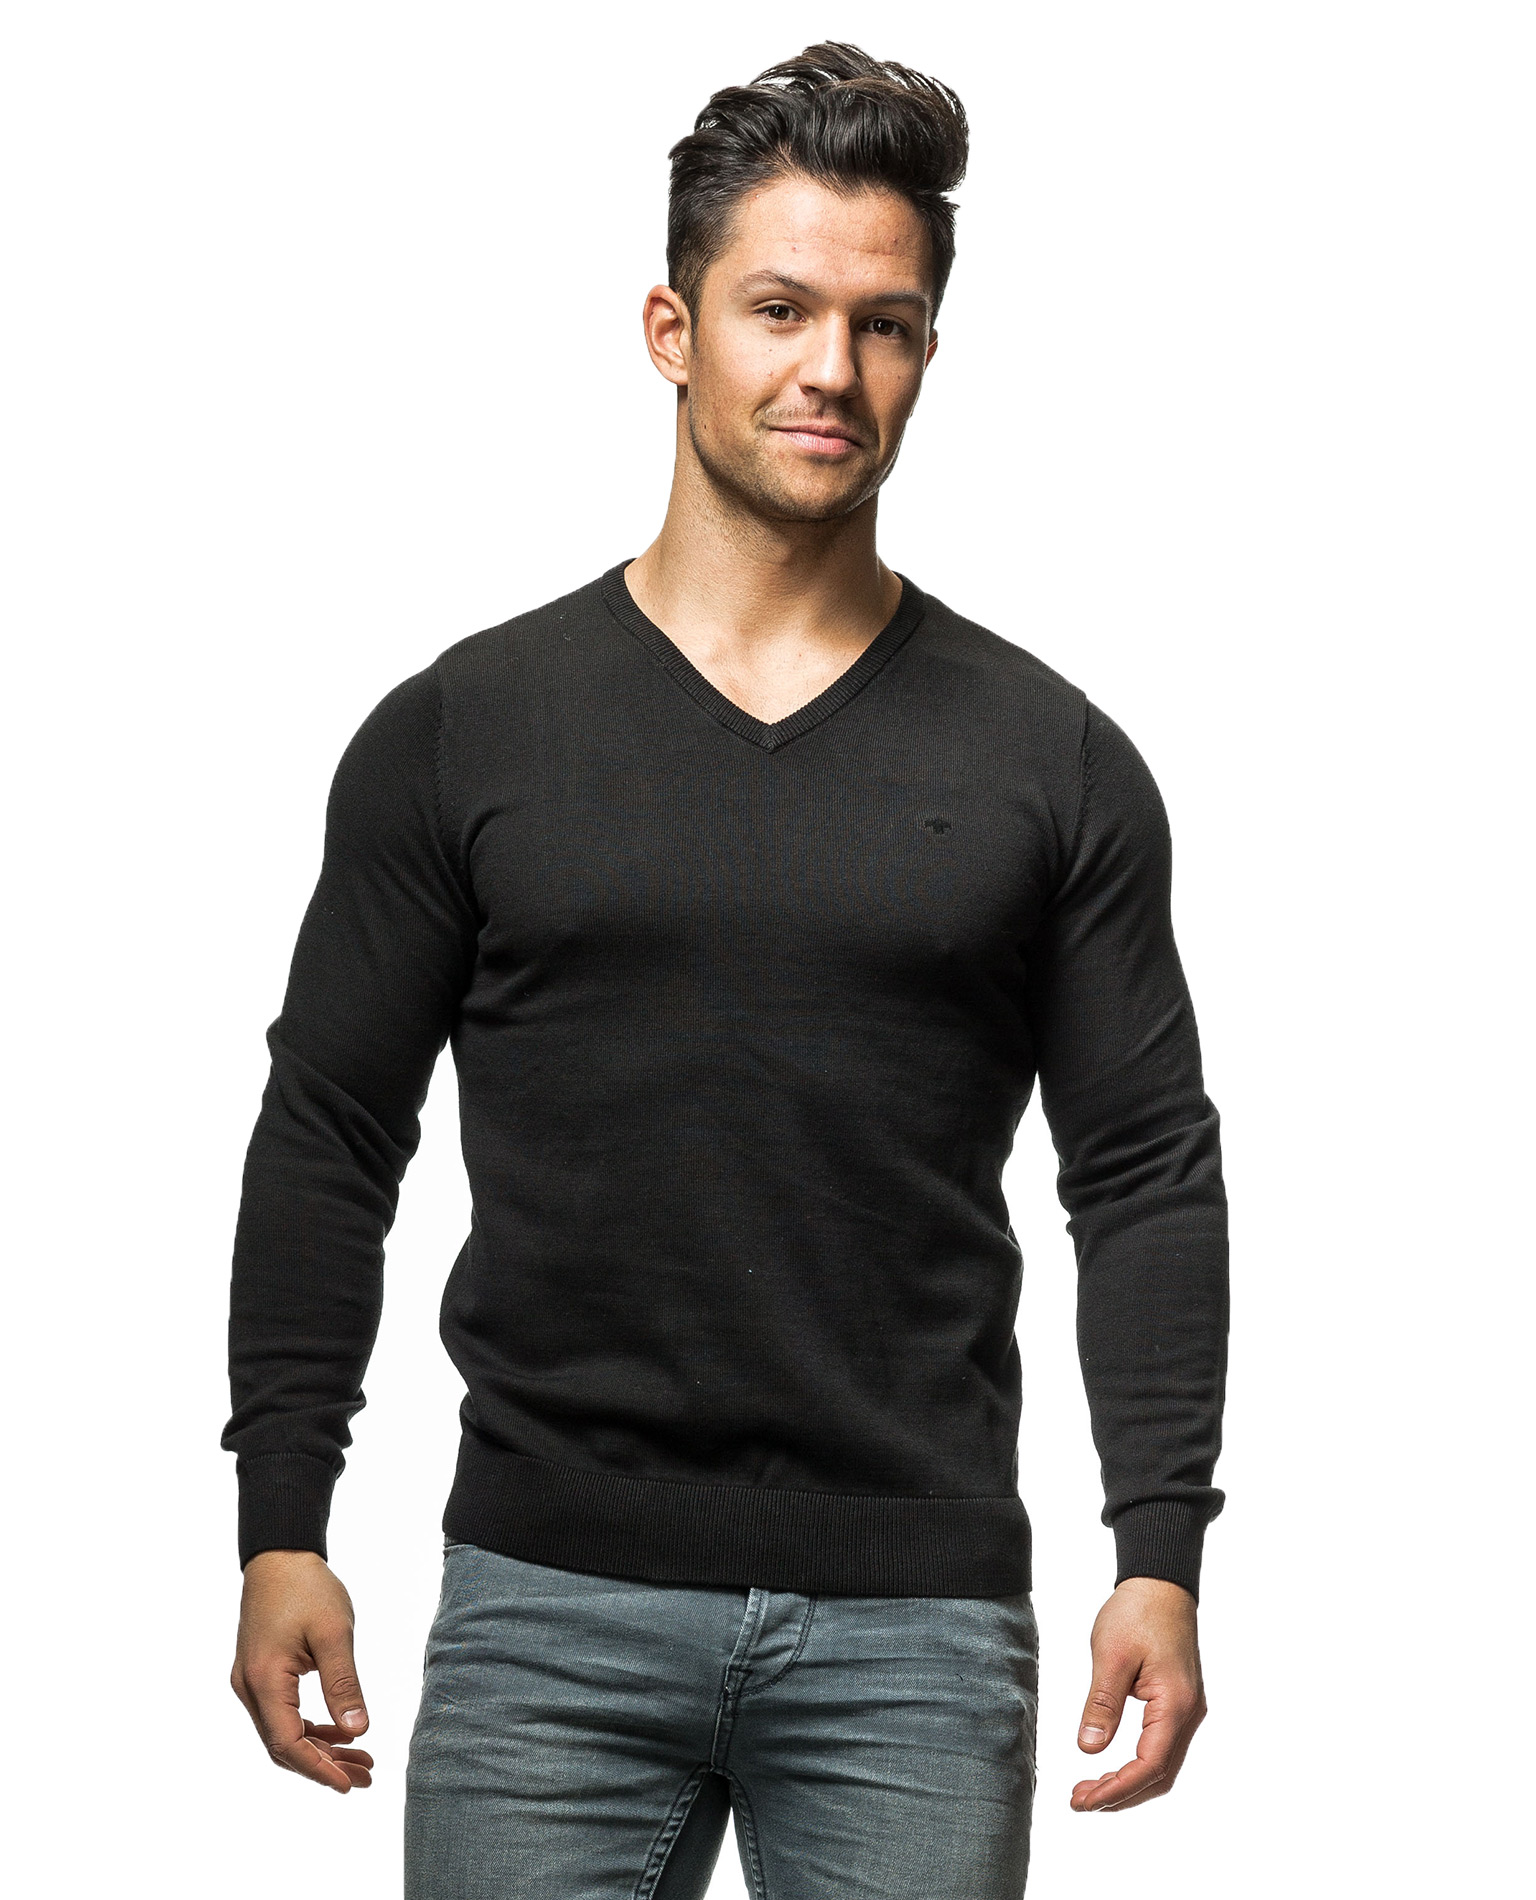 Tom Taolor Basic V Neck Tom Tailor 3578 Long Sleeves Jerone